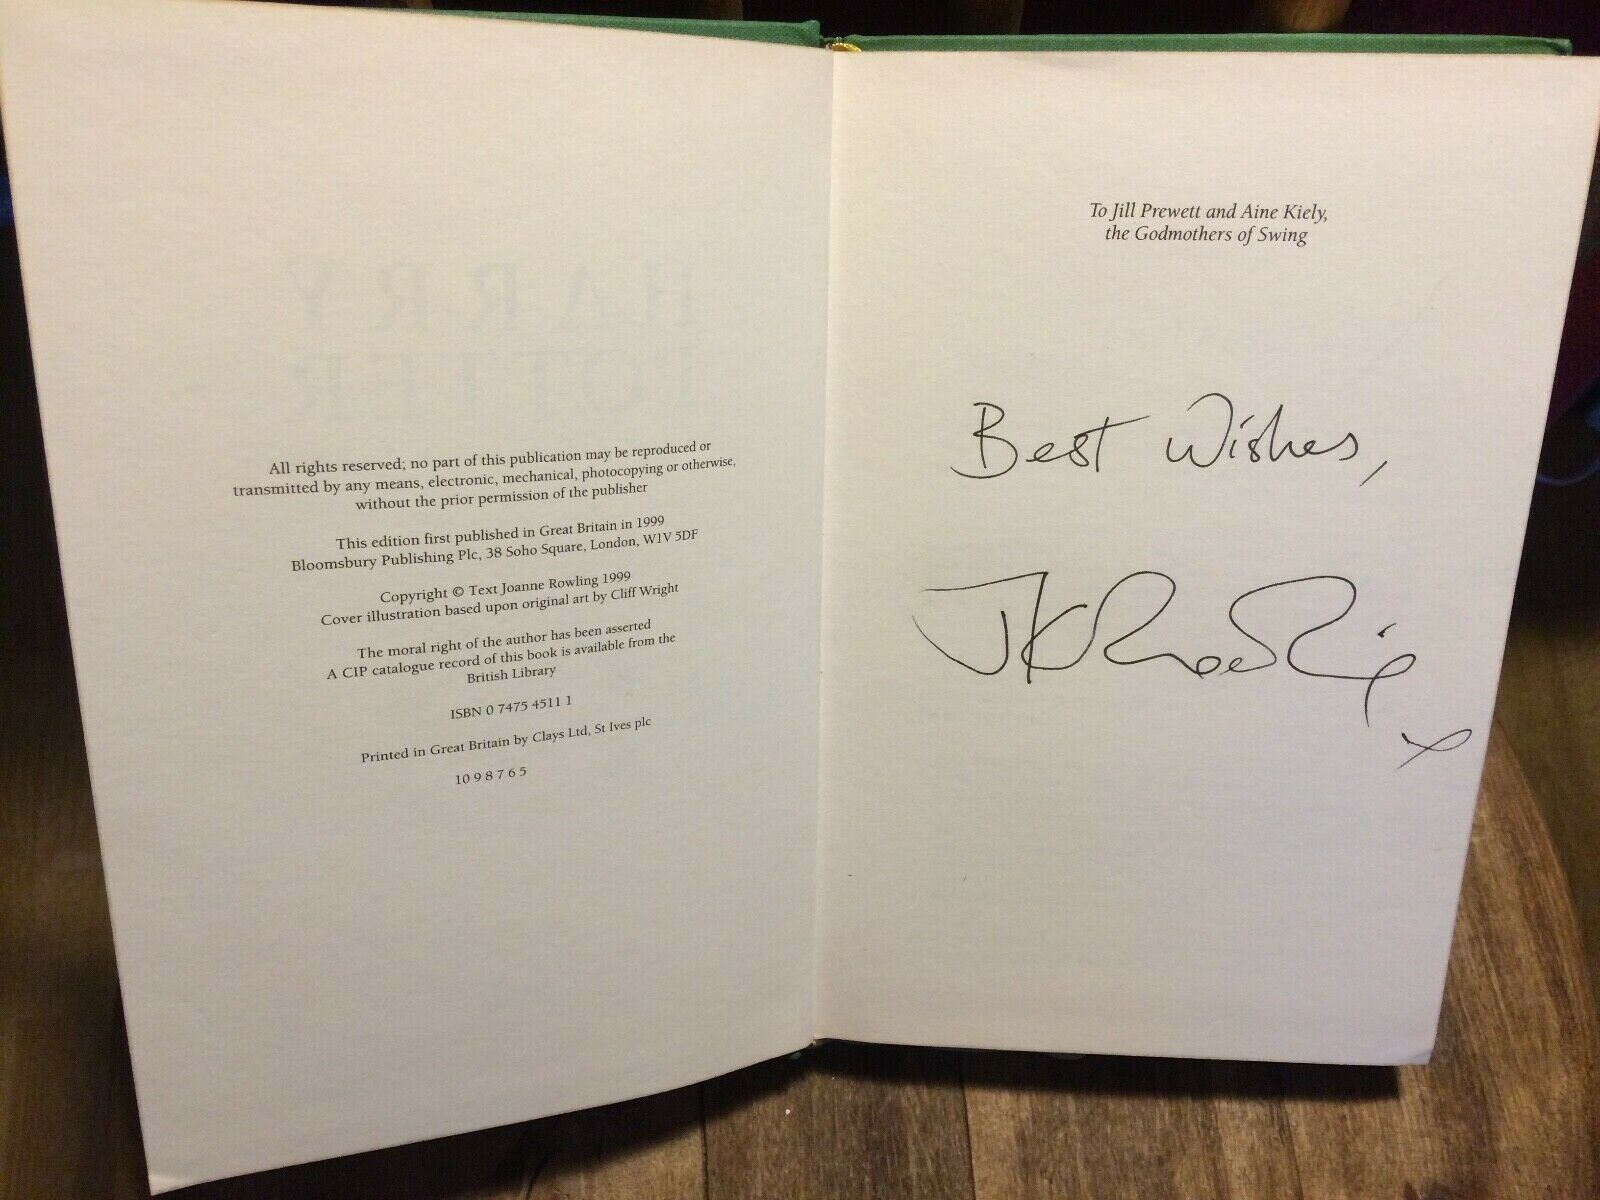 J.K. Rowling signature forgery found on ebay inside a UK Harry Potter and the Prisoner of Azkaban. Sold by beatjup0.